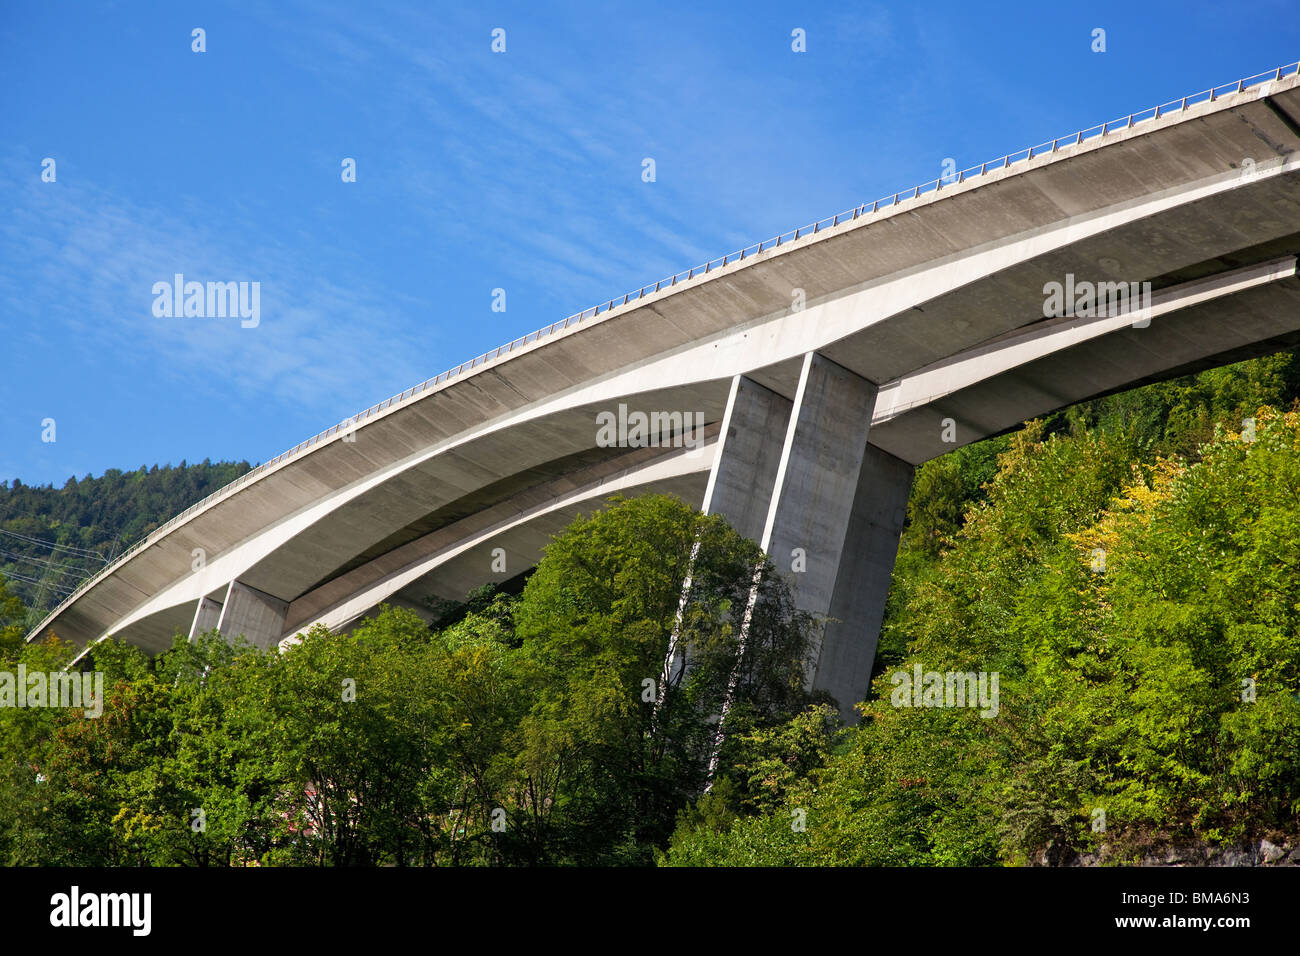 High modern road on mountains. Angle view. - Stock Image